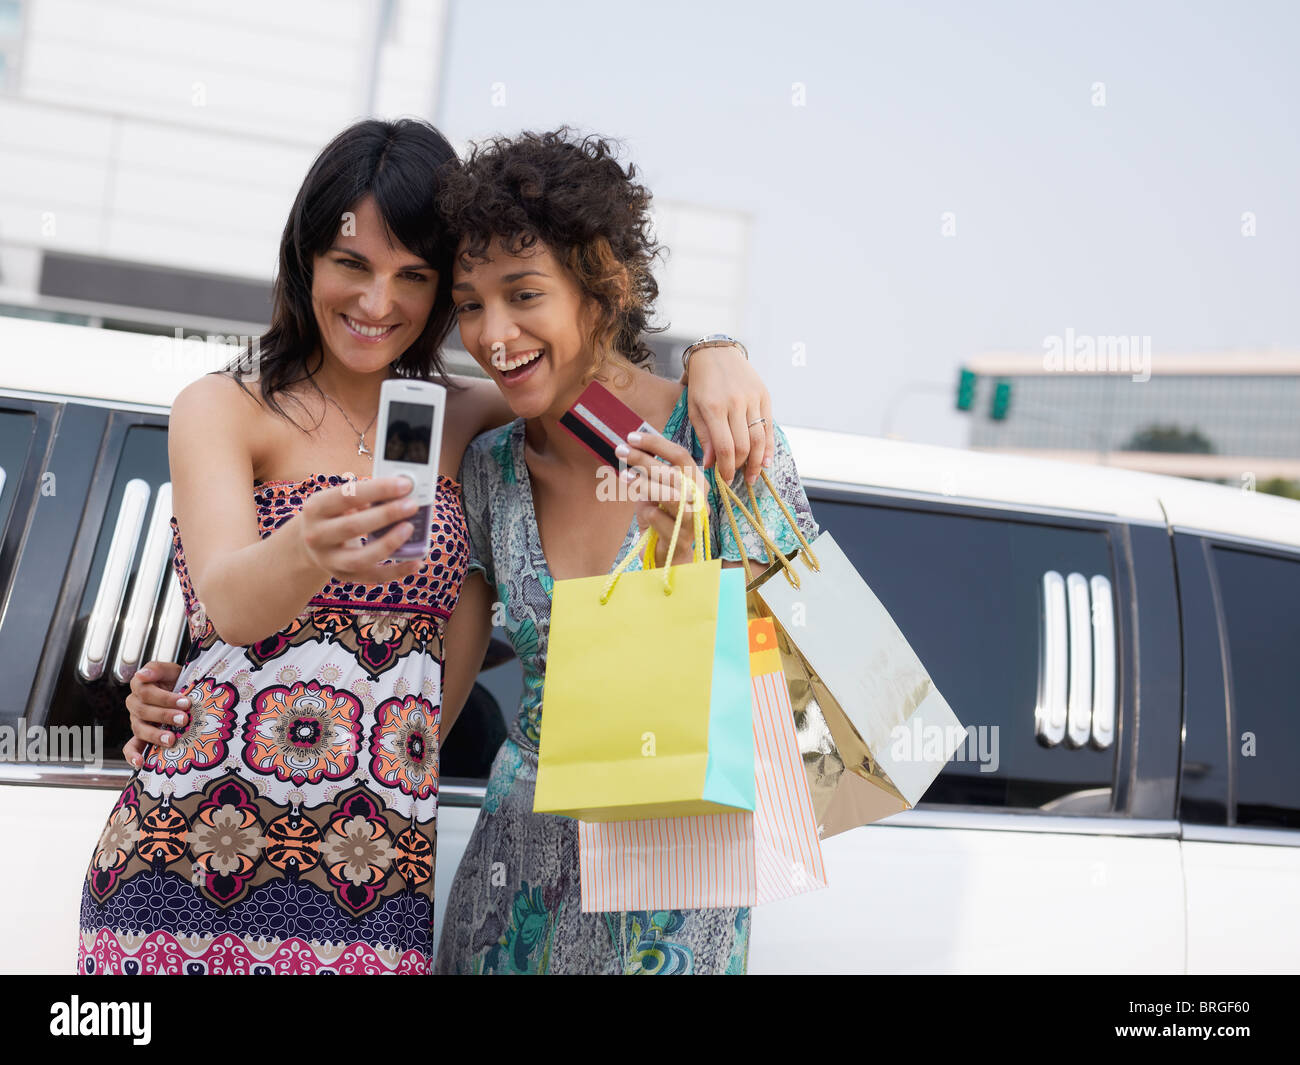 two women standing by limousine and taking picture on mobile phone. Horizontal shape, waist up, copy space - Stock Image